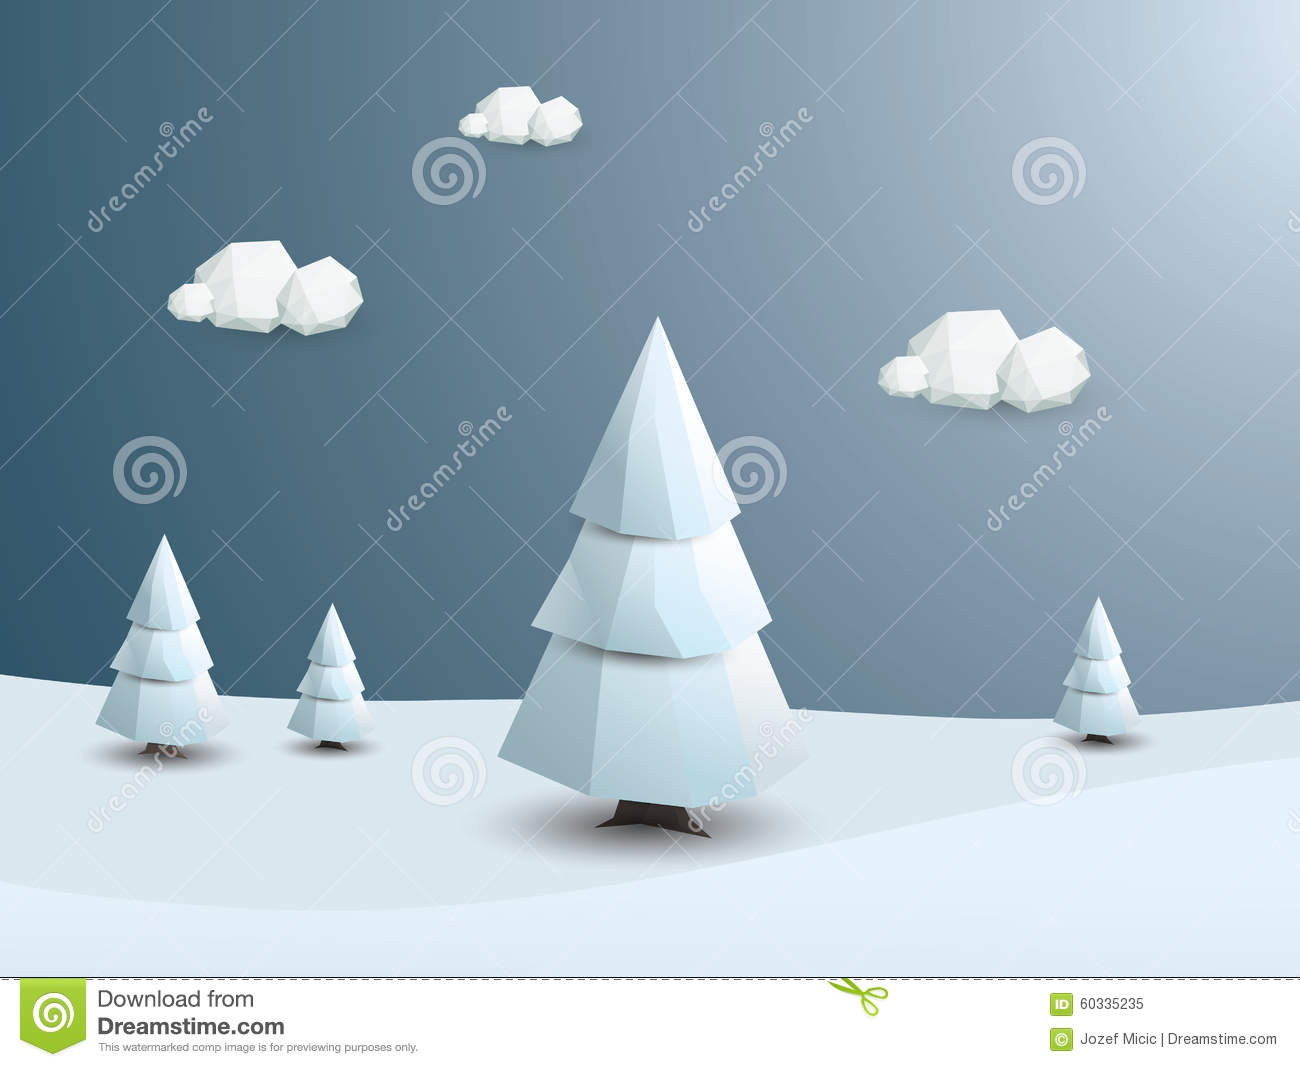 More similar stock images of 3d landscape with fall tree - Low Poly Winter Landscape Vector Background 3d Royalty Free Stock Photo